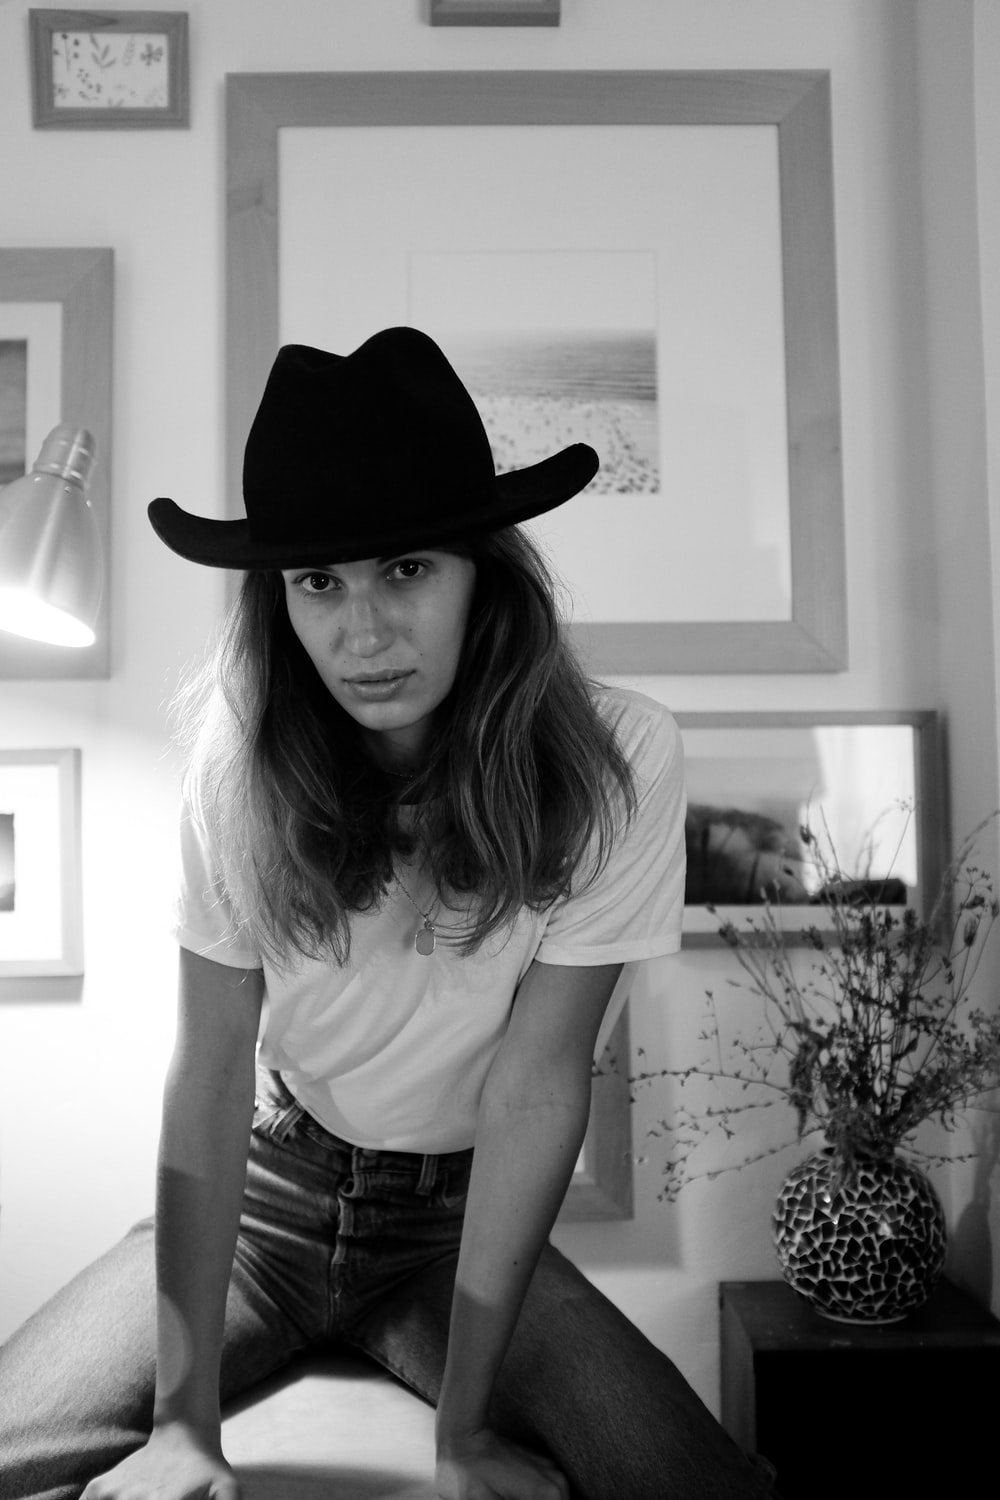 woman in white shirt and black cowboy hat